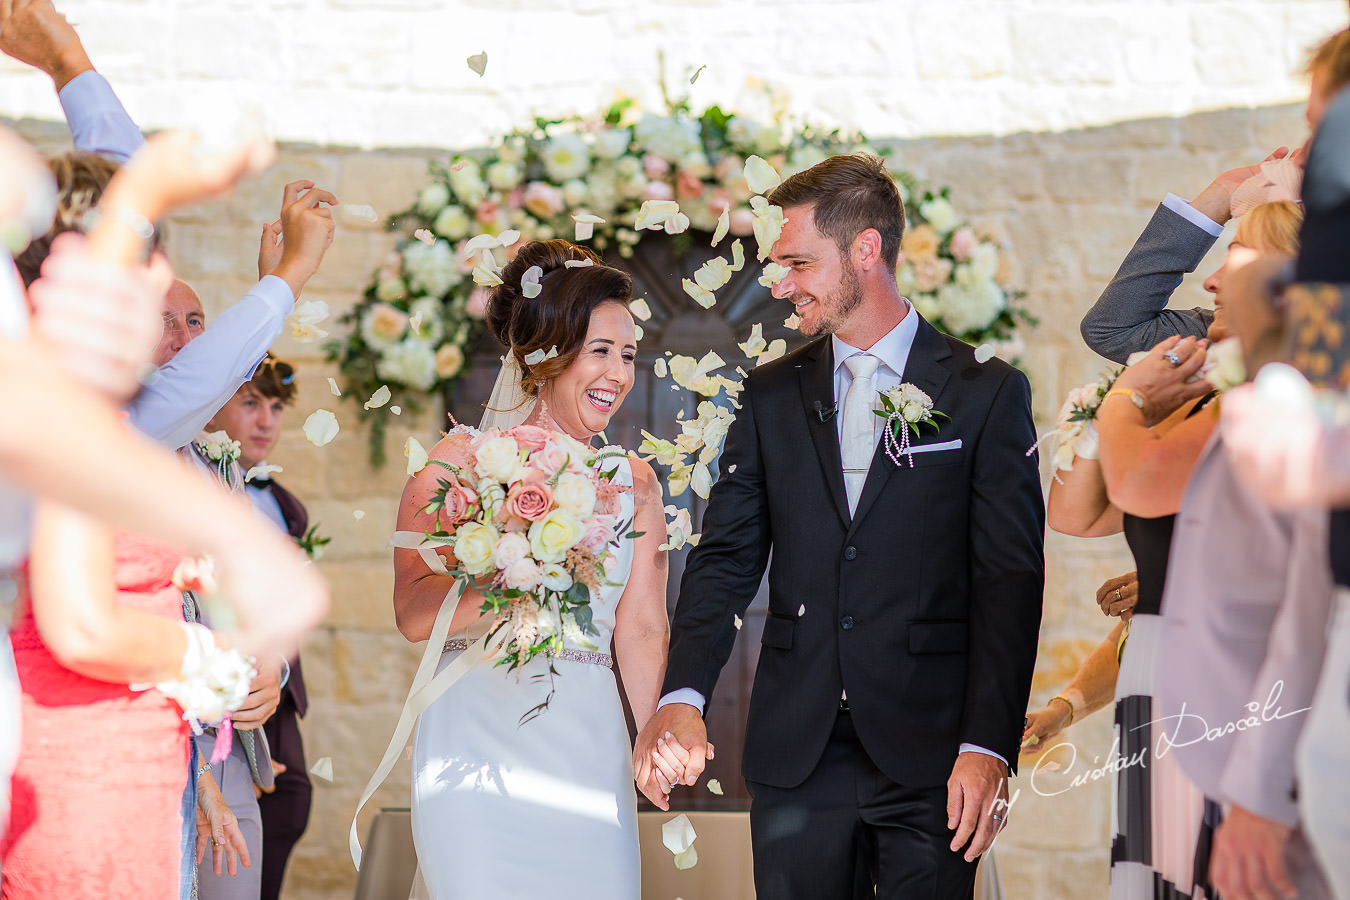 Confetti moments captured by Cristian Dascalu during an elegant Aphrodite Hills Wedding in Cyprus.